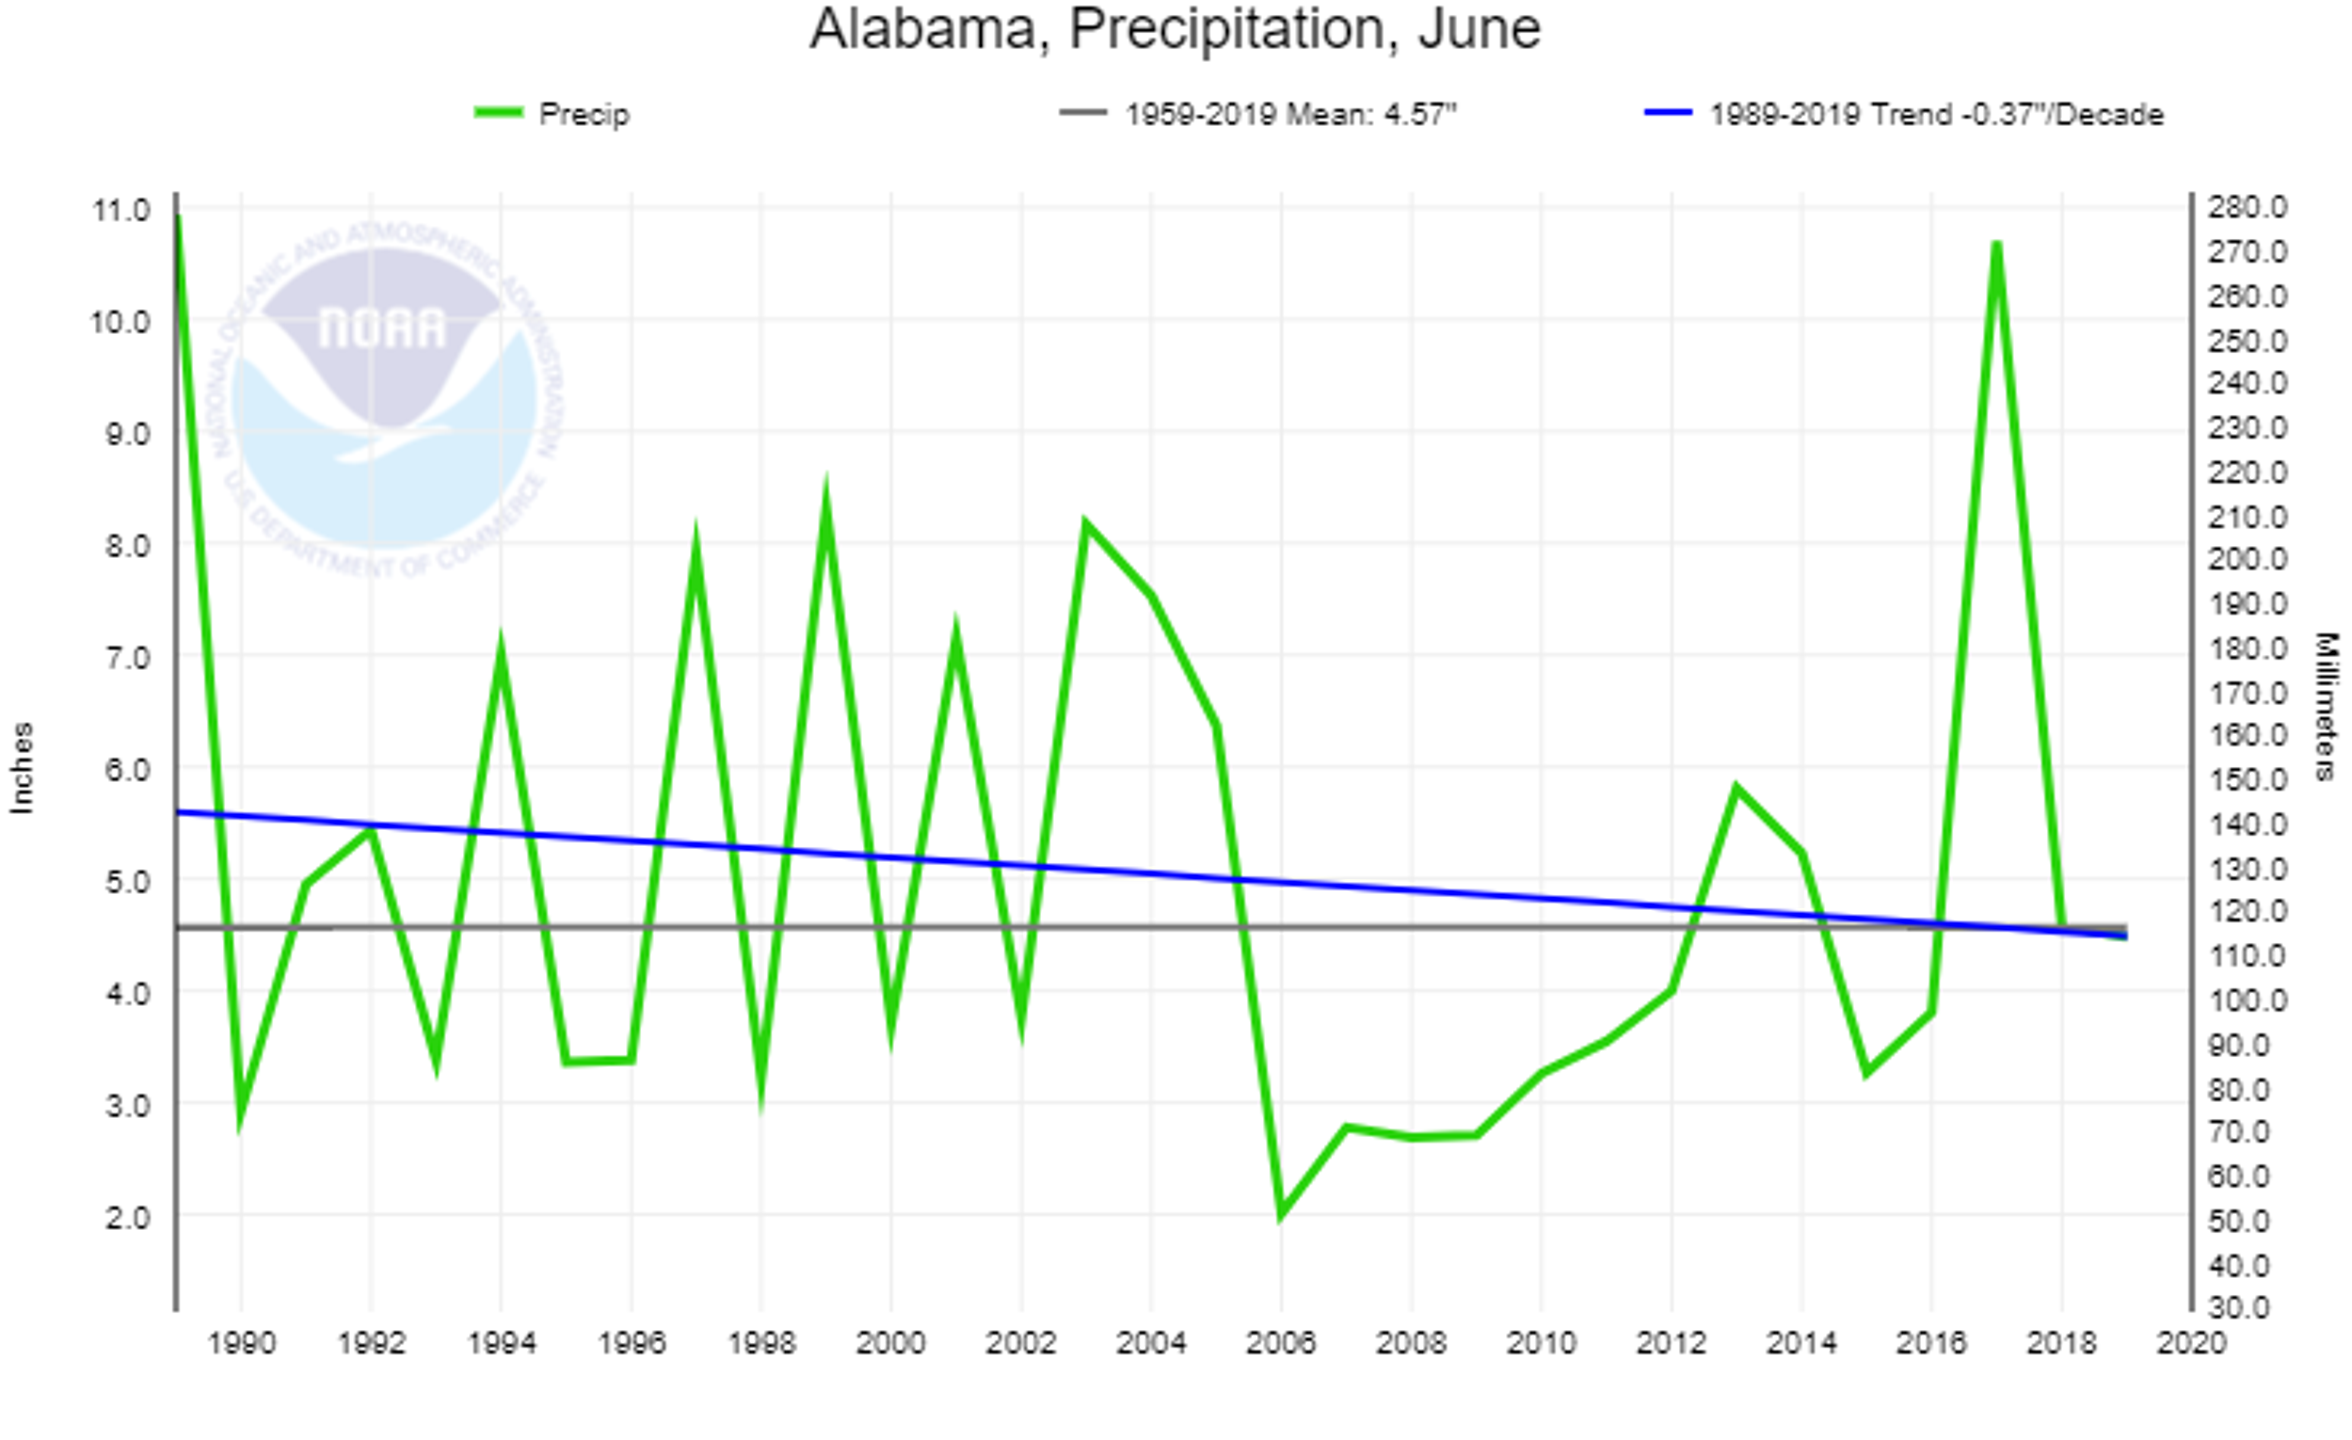 Statistics compiled by the National Oceanic and Atmospheric Administration (NOAA) show average precipitation declining in June in Alabama since 1989.